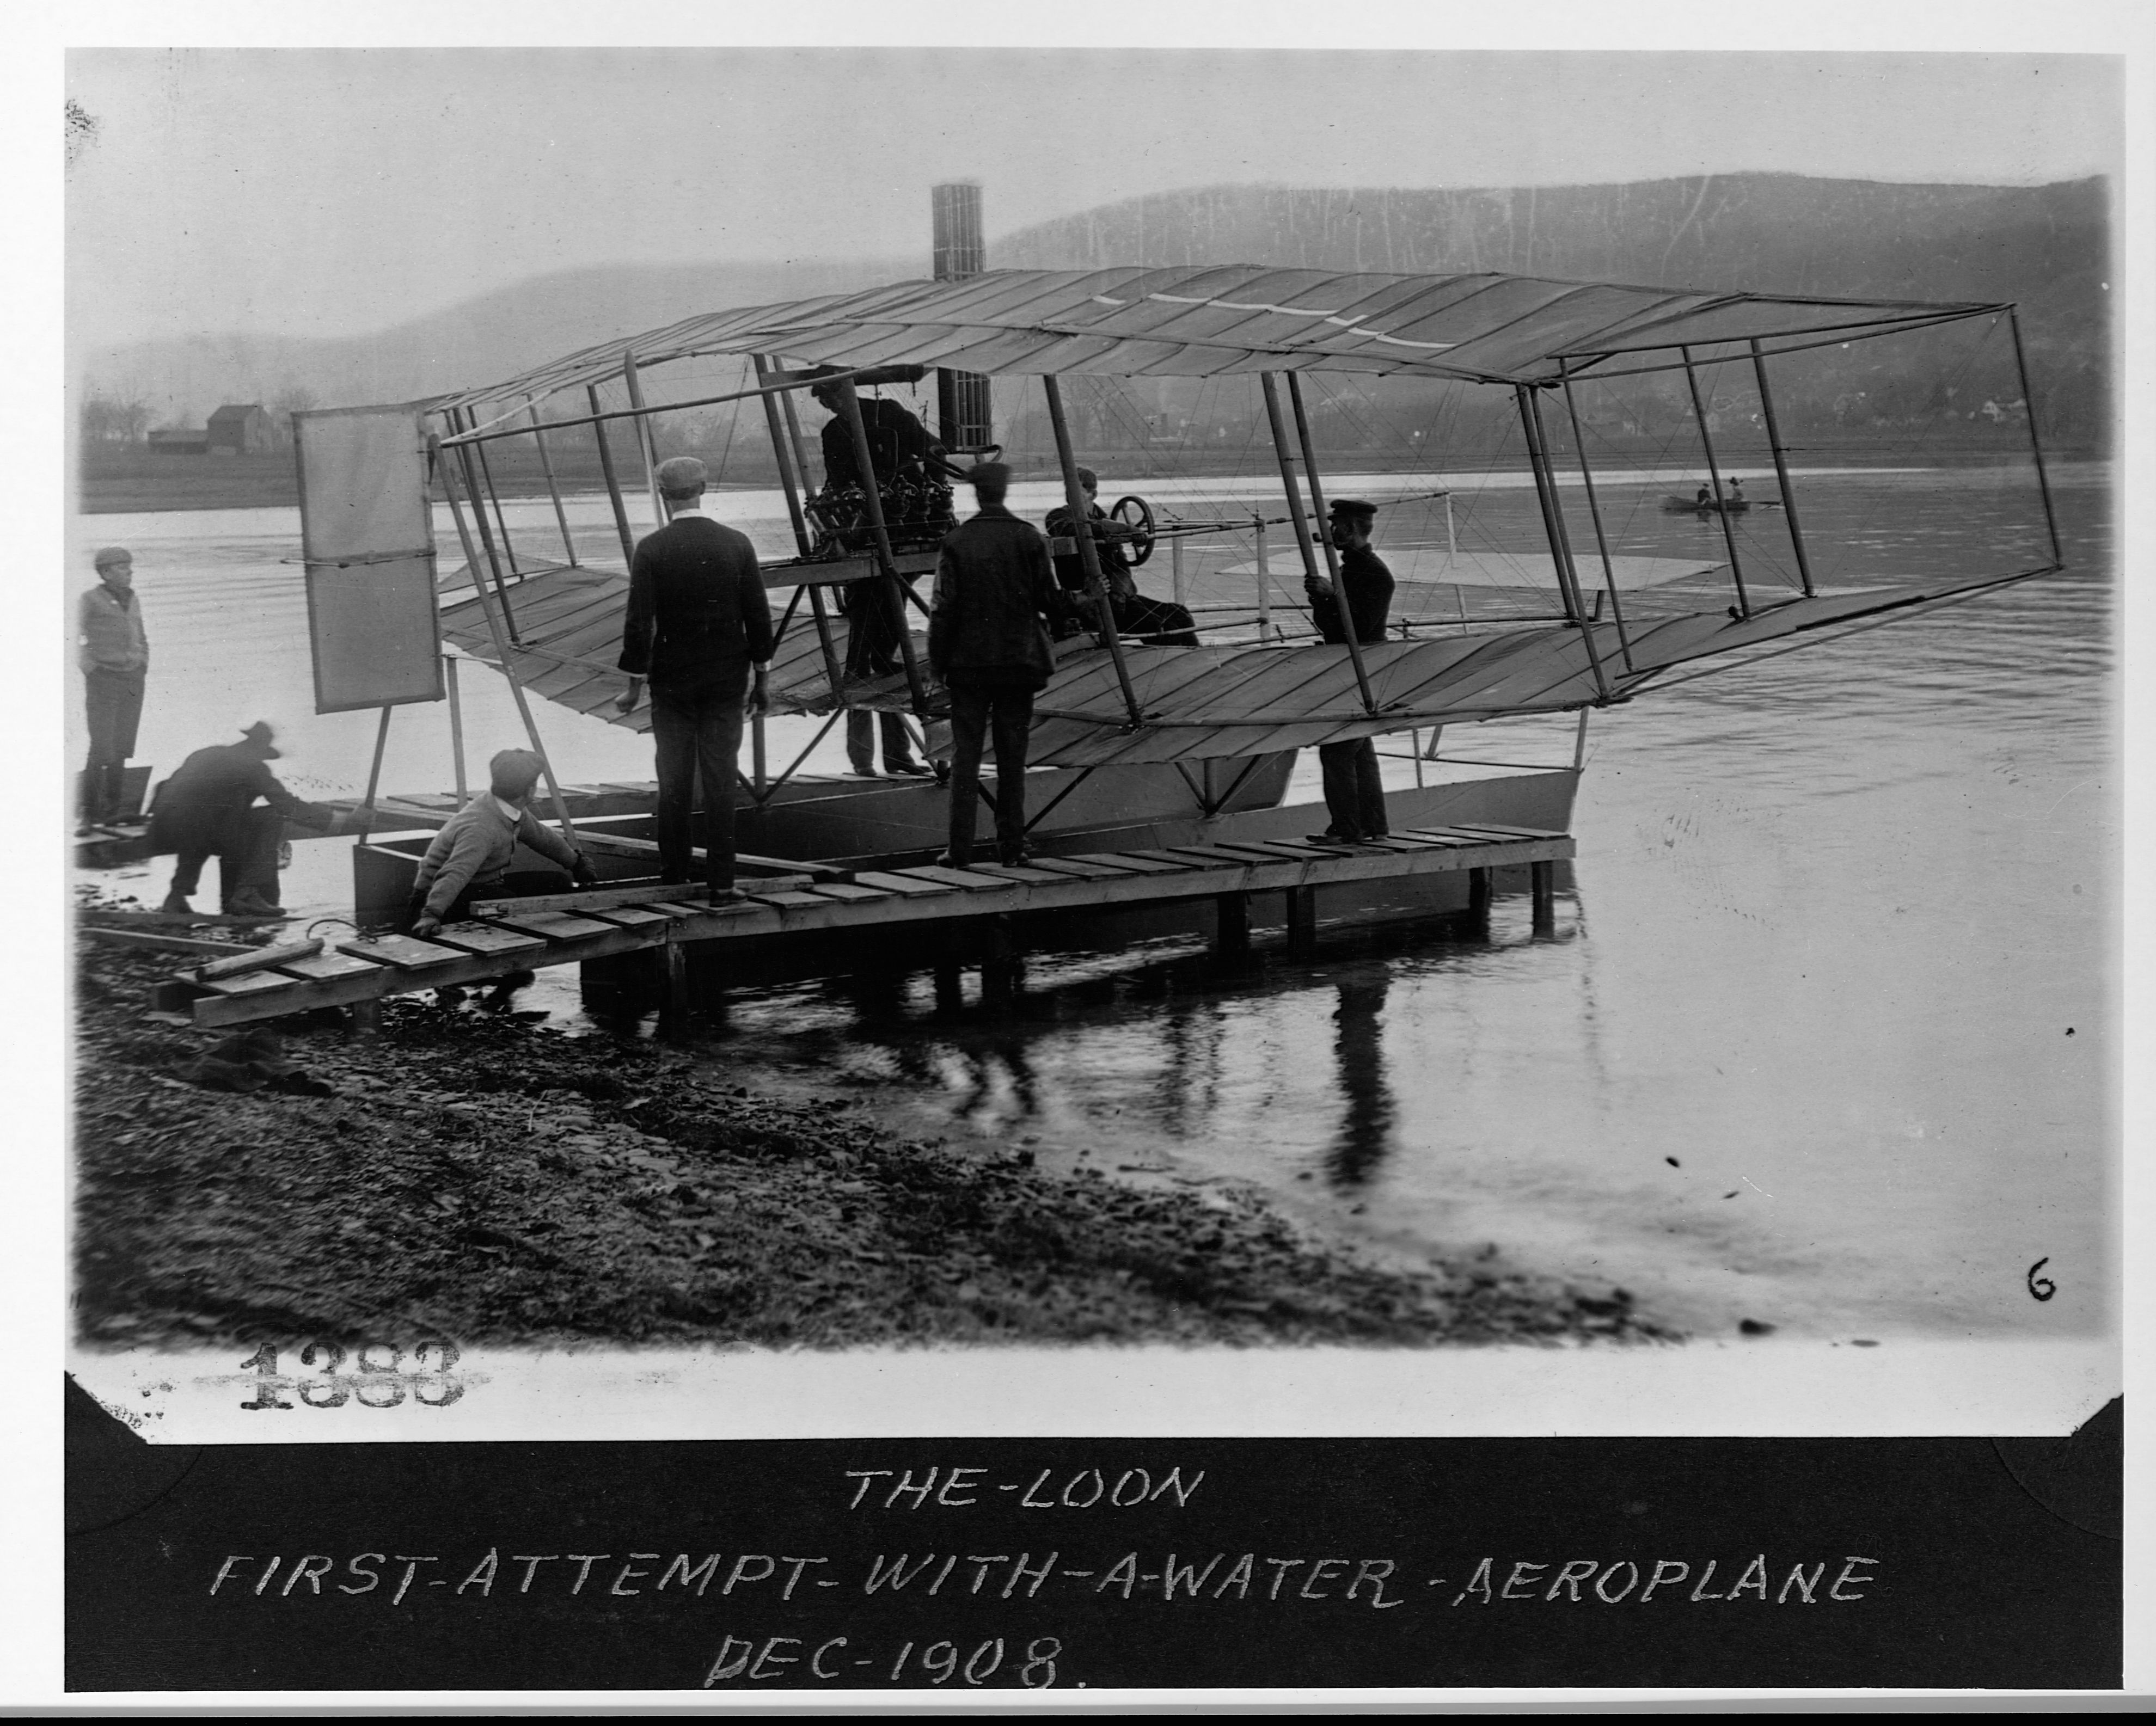 A List Of Important Inventions And Innovations Diagram Together With Boat Battery Wiring On Electric Fence The First Attempt By Aviator Glenn Curtiss To Create Seaplane Aka Flying Didnt Work So Well Getty Images Library Congress